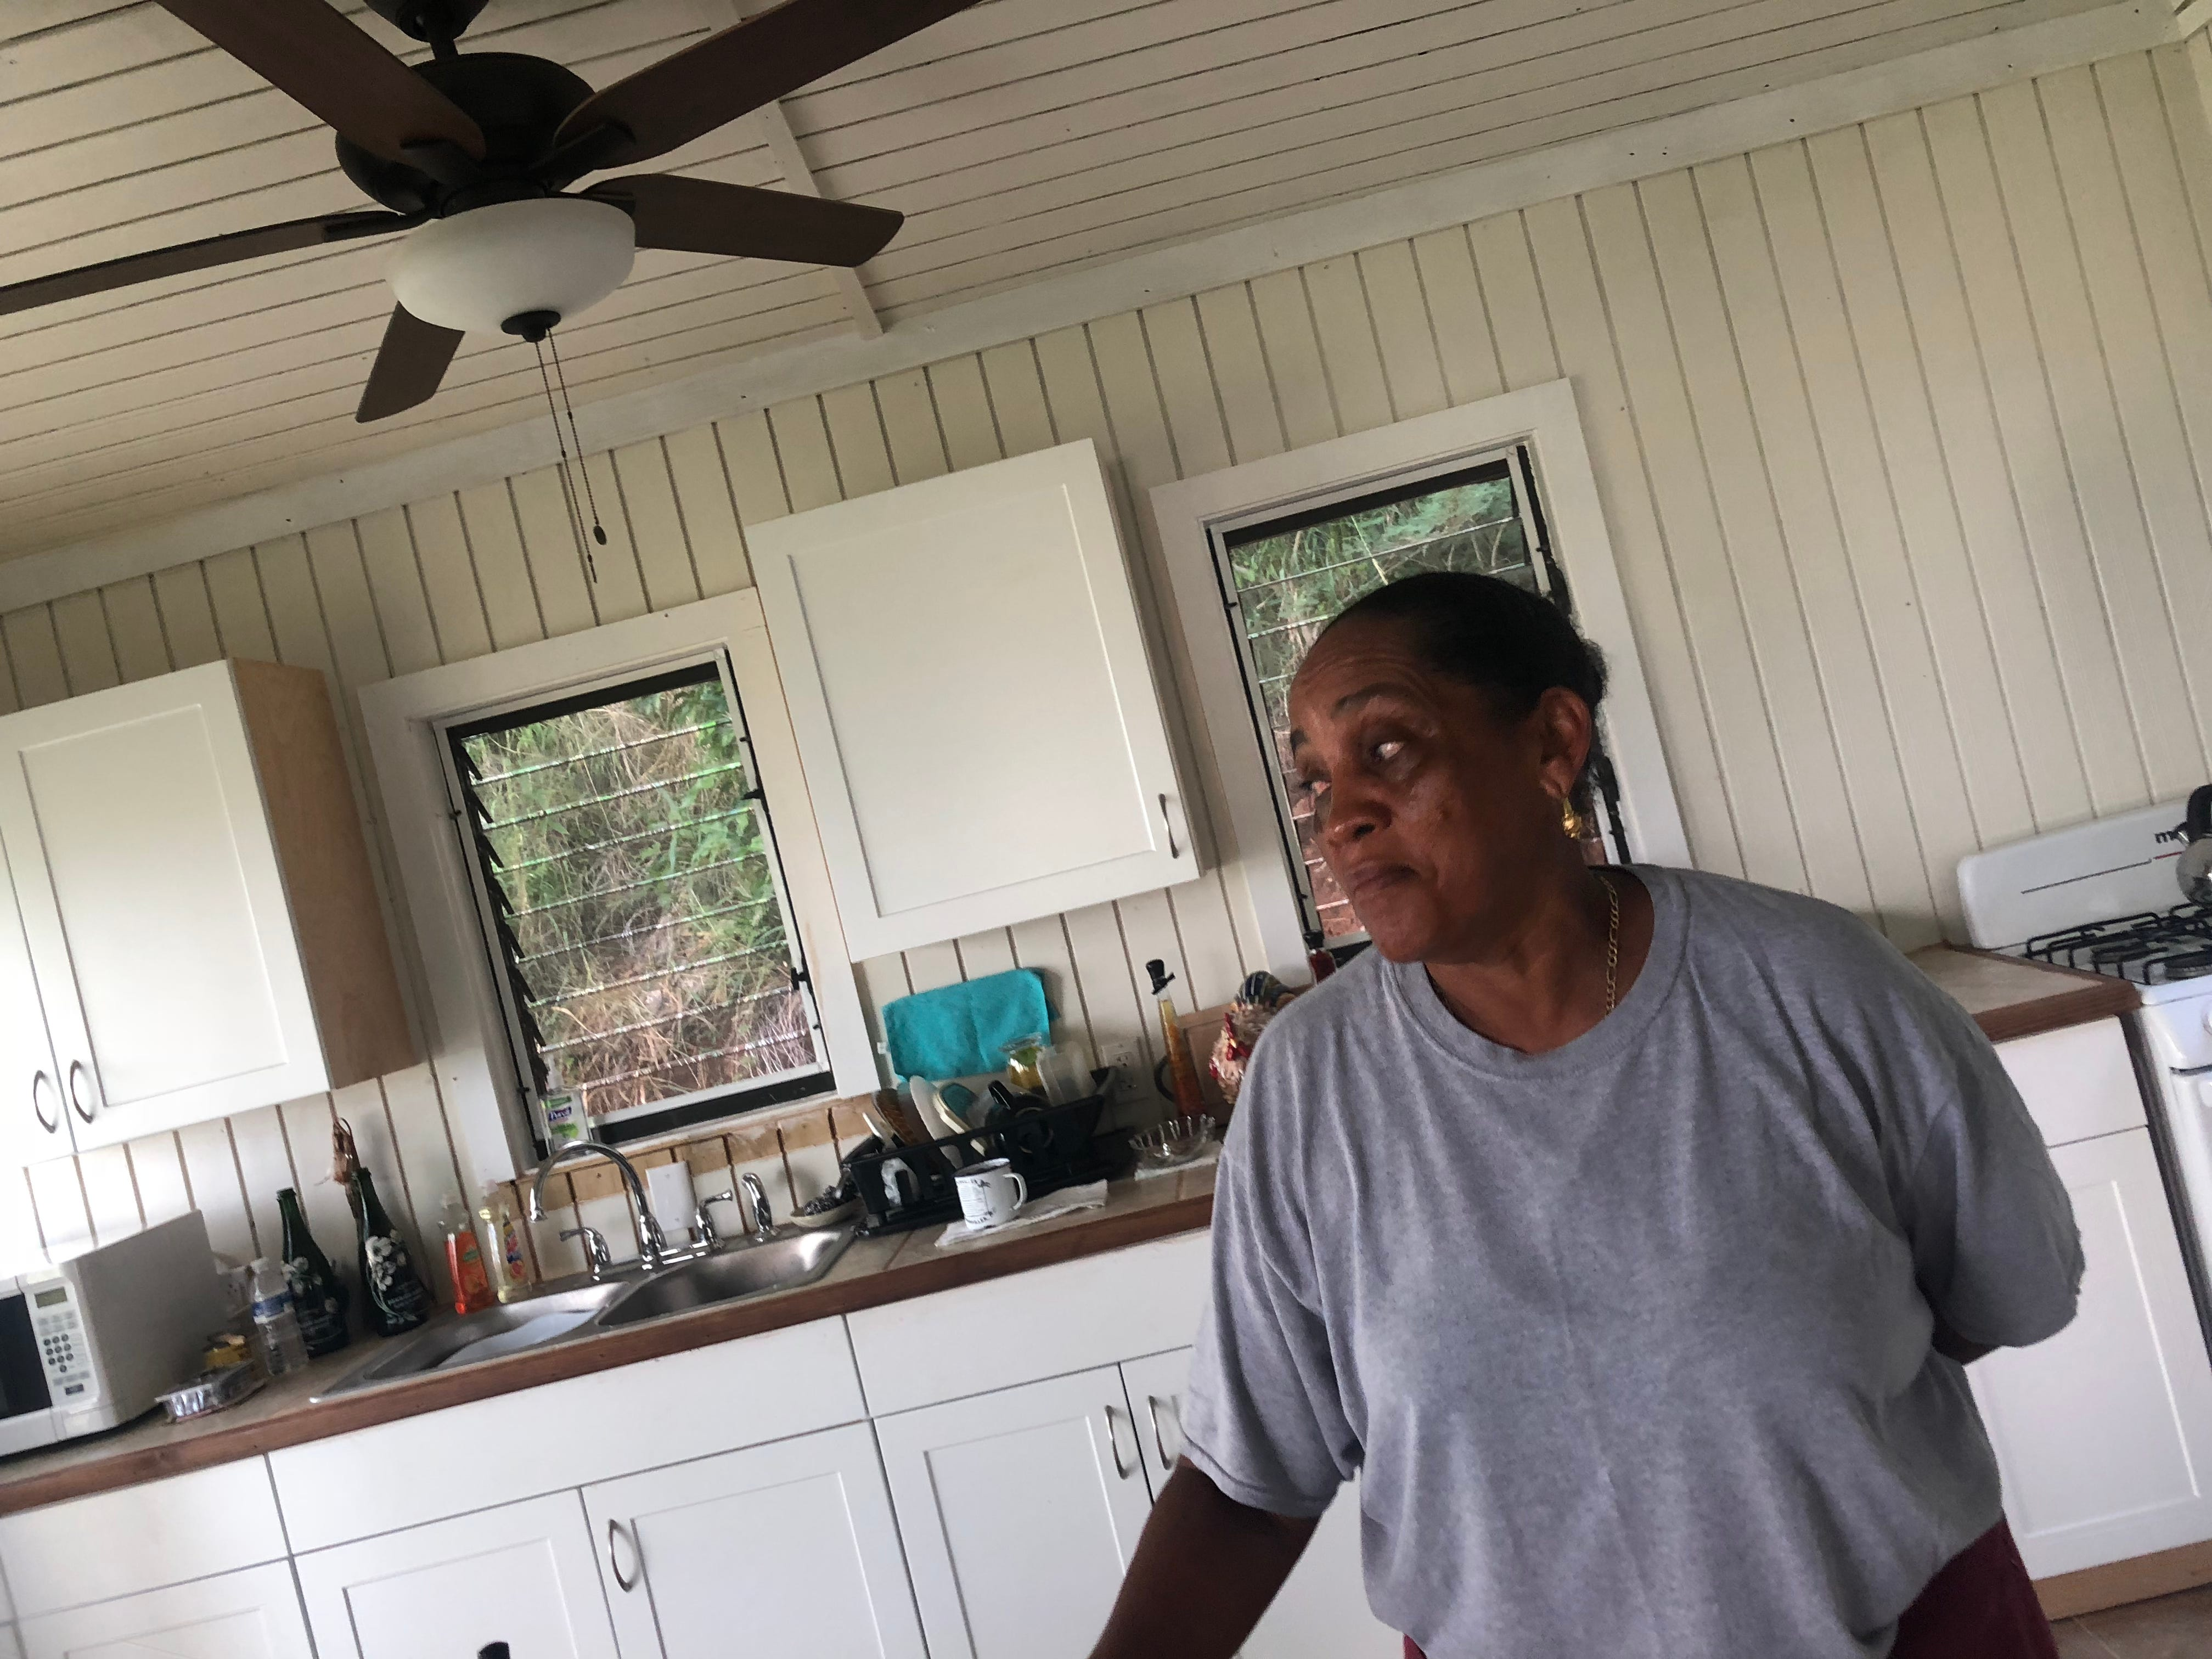 Evelyne Stephen, 61, inside the new two-bedroom home built by Love for Love City, one of the private groups helping to rebuild St. John. Stephen received $11,000 from FEMA but it wasnÕt enough to replace her home, which was destroyed by Hurricane Irma.